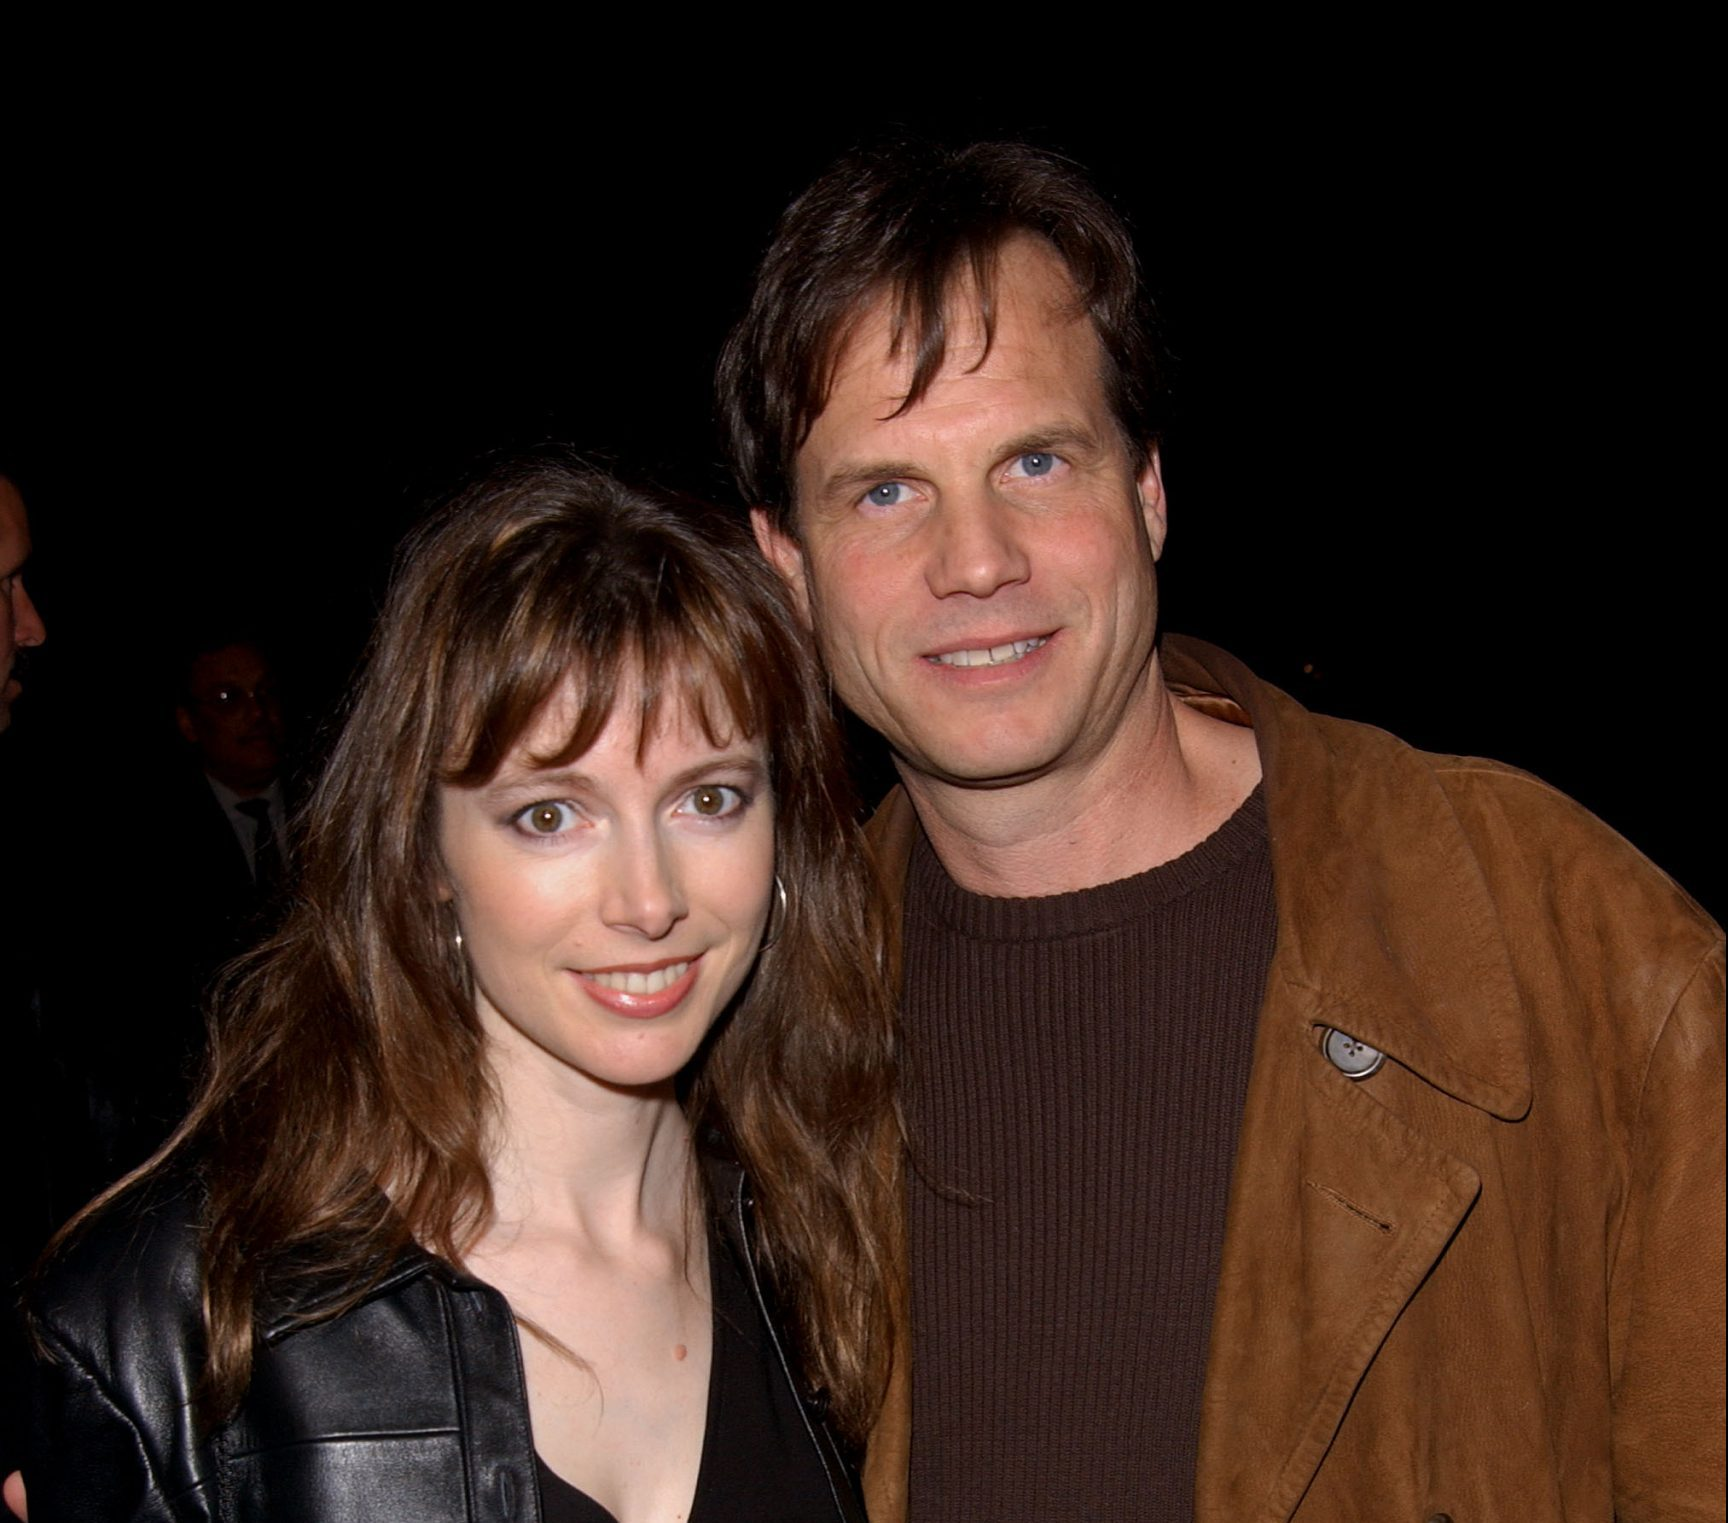 gettyimages 758109 scaled e1621001856854 20 Things You Never Knew About Bill Paxton